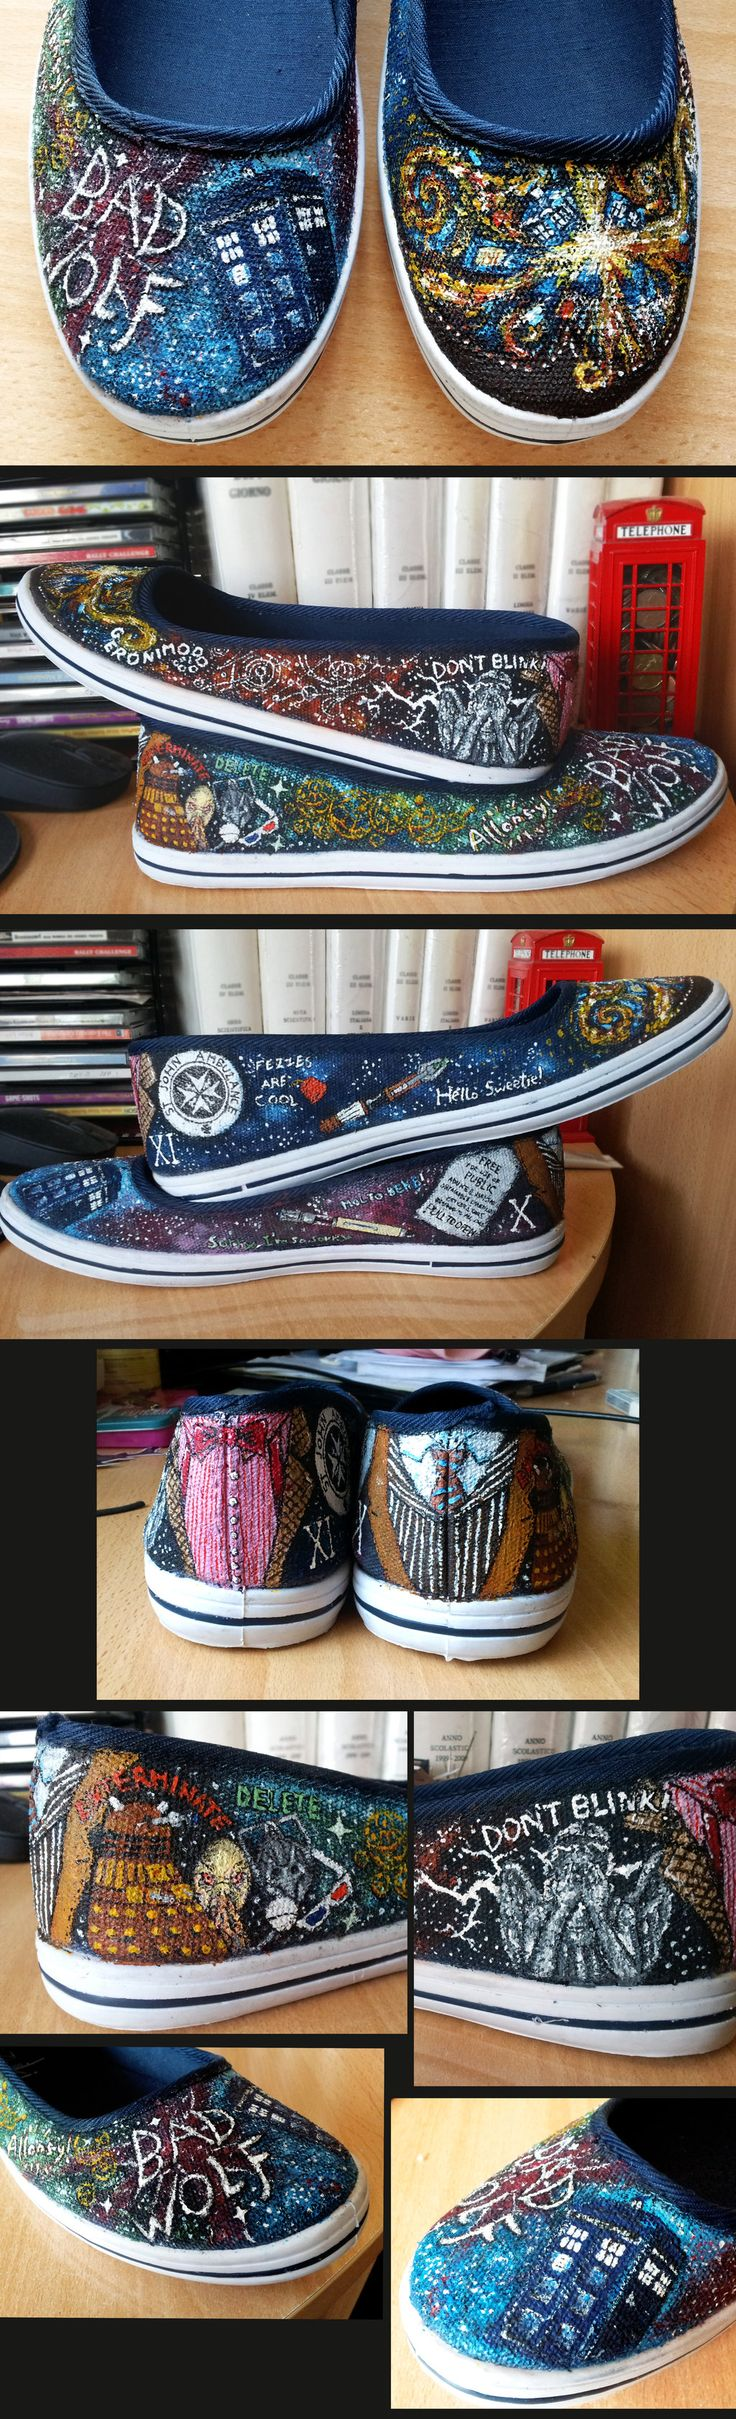 Doctor Who Shoes by ~EerieStir on deviantART~AMAZING!!!